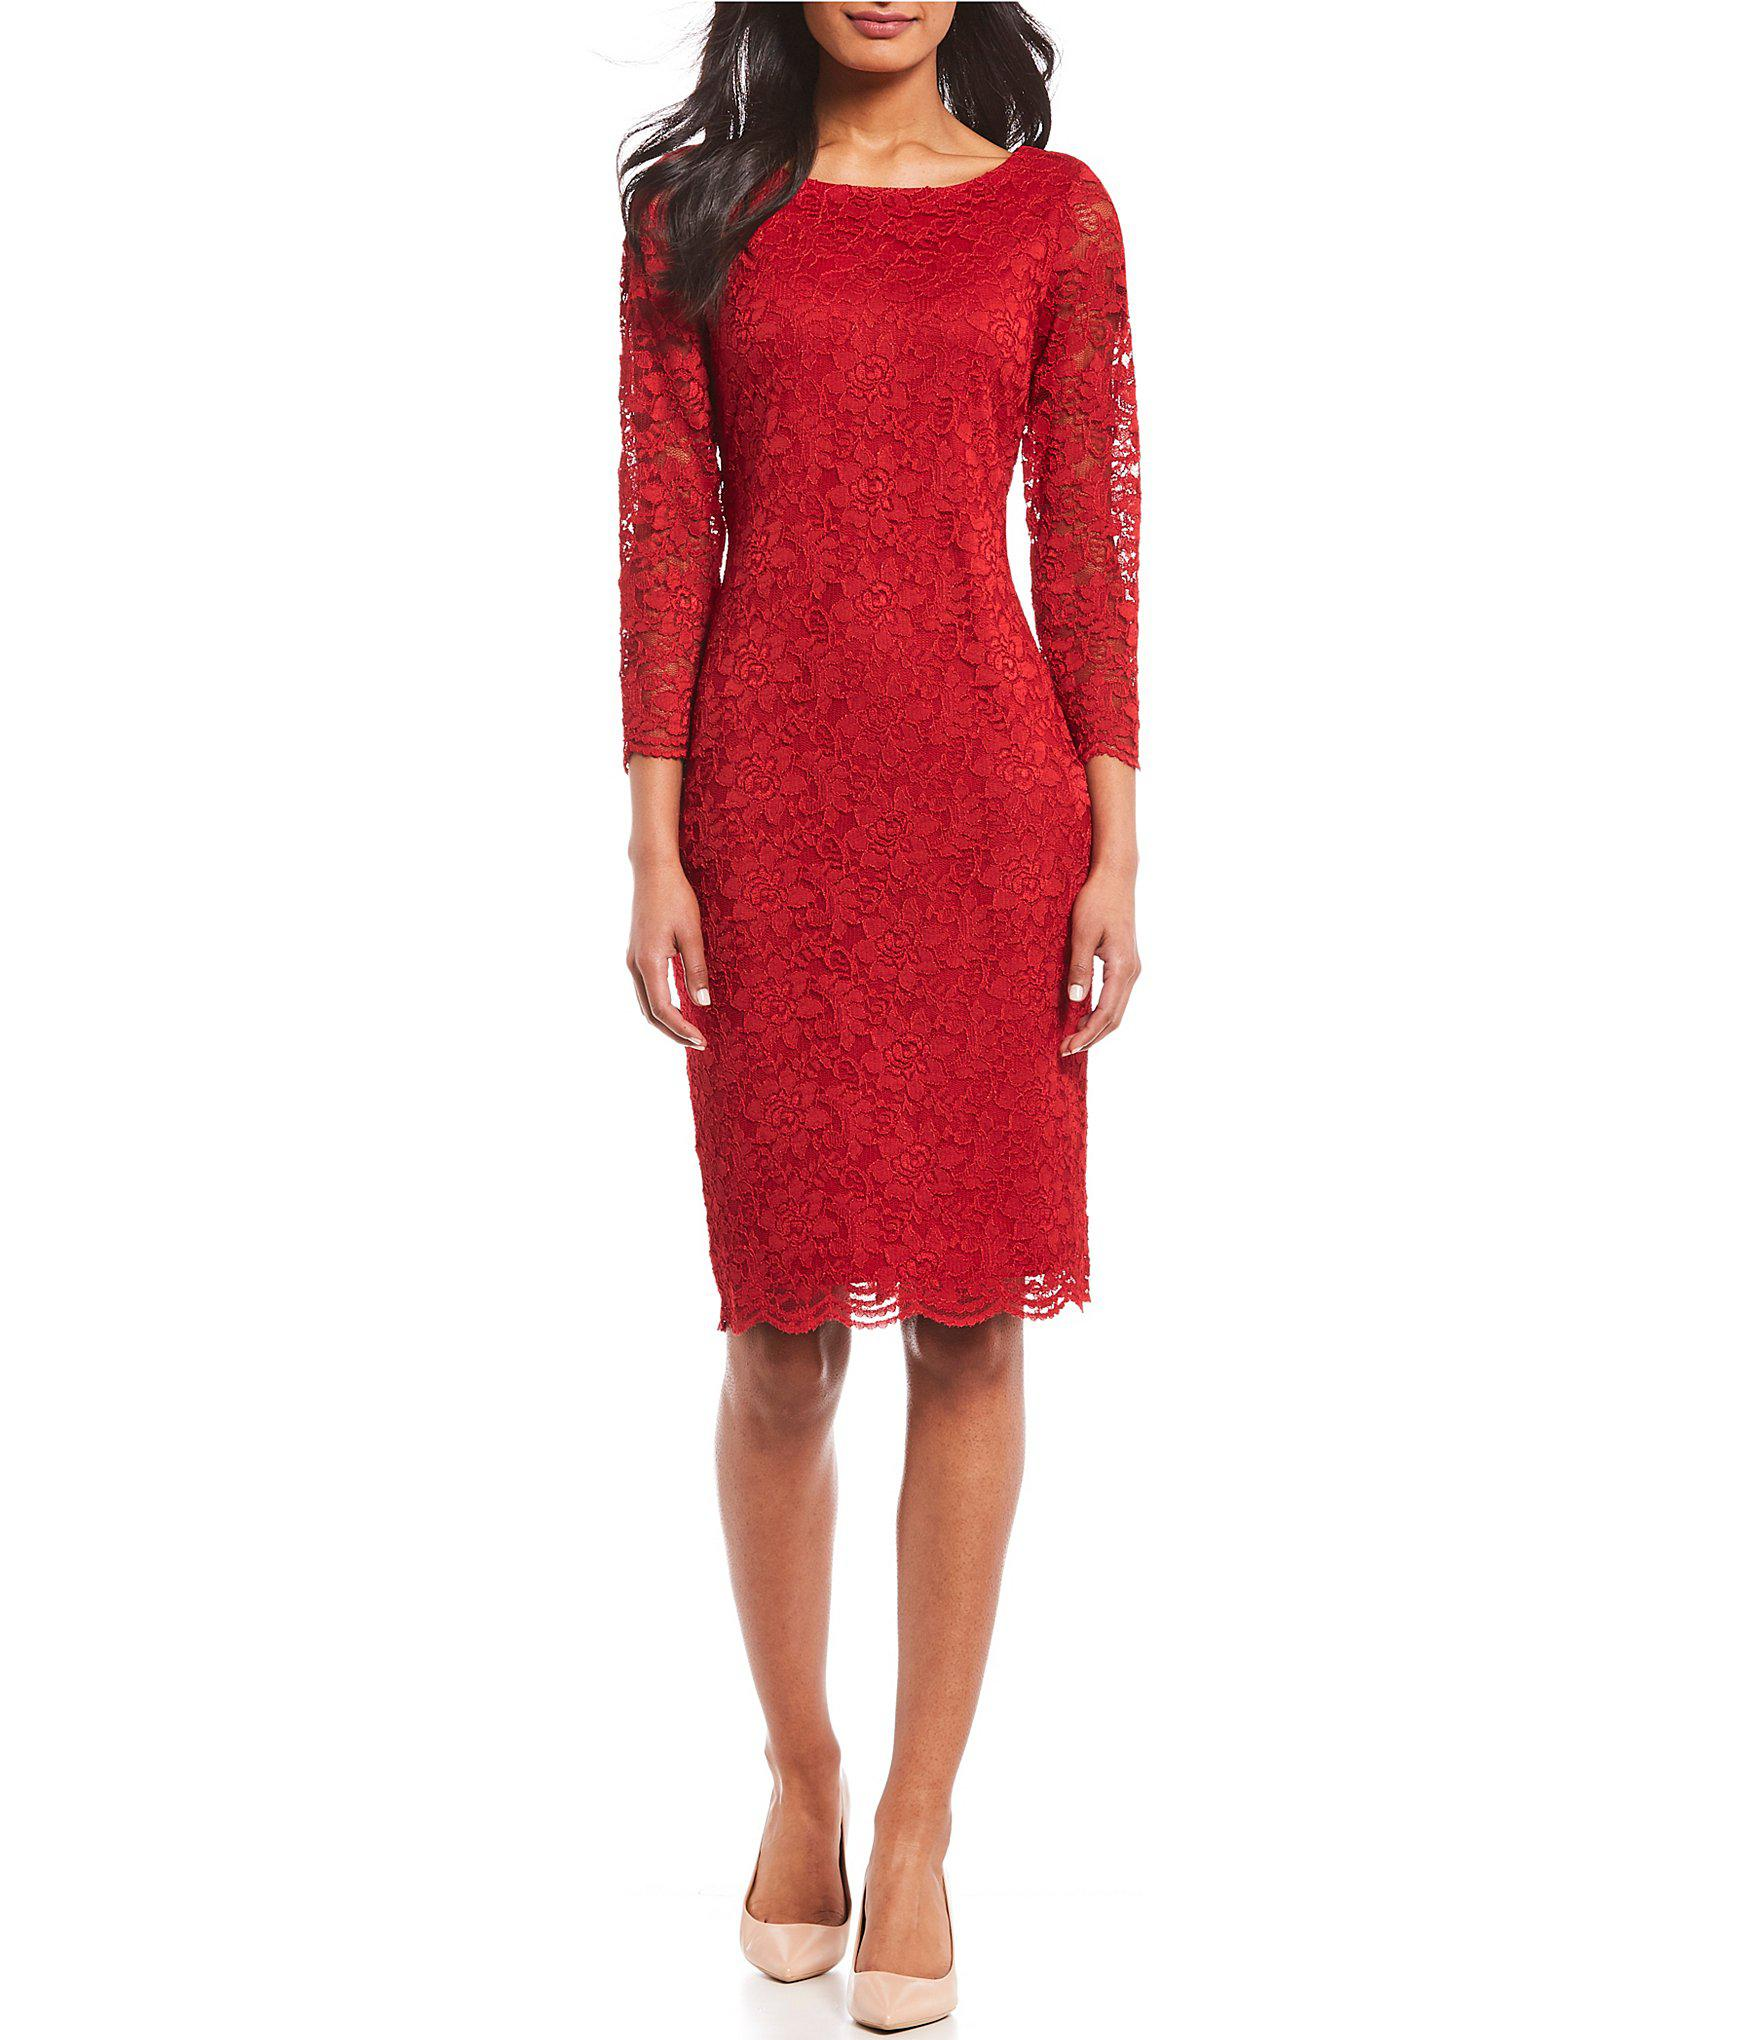 07a59bb9f67 Lyst - Calvin Klein 3 4 Sleeve Lace Sheath Dress in Red